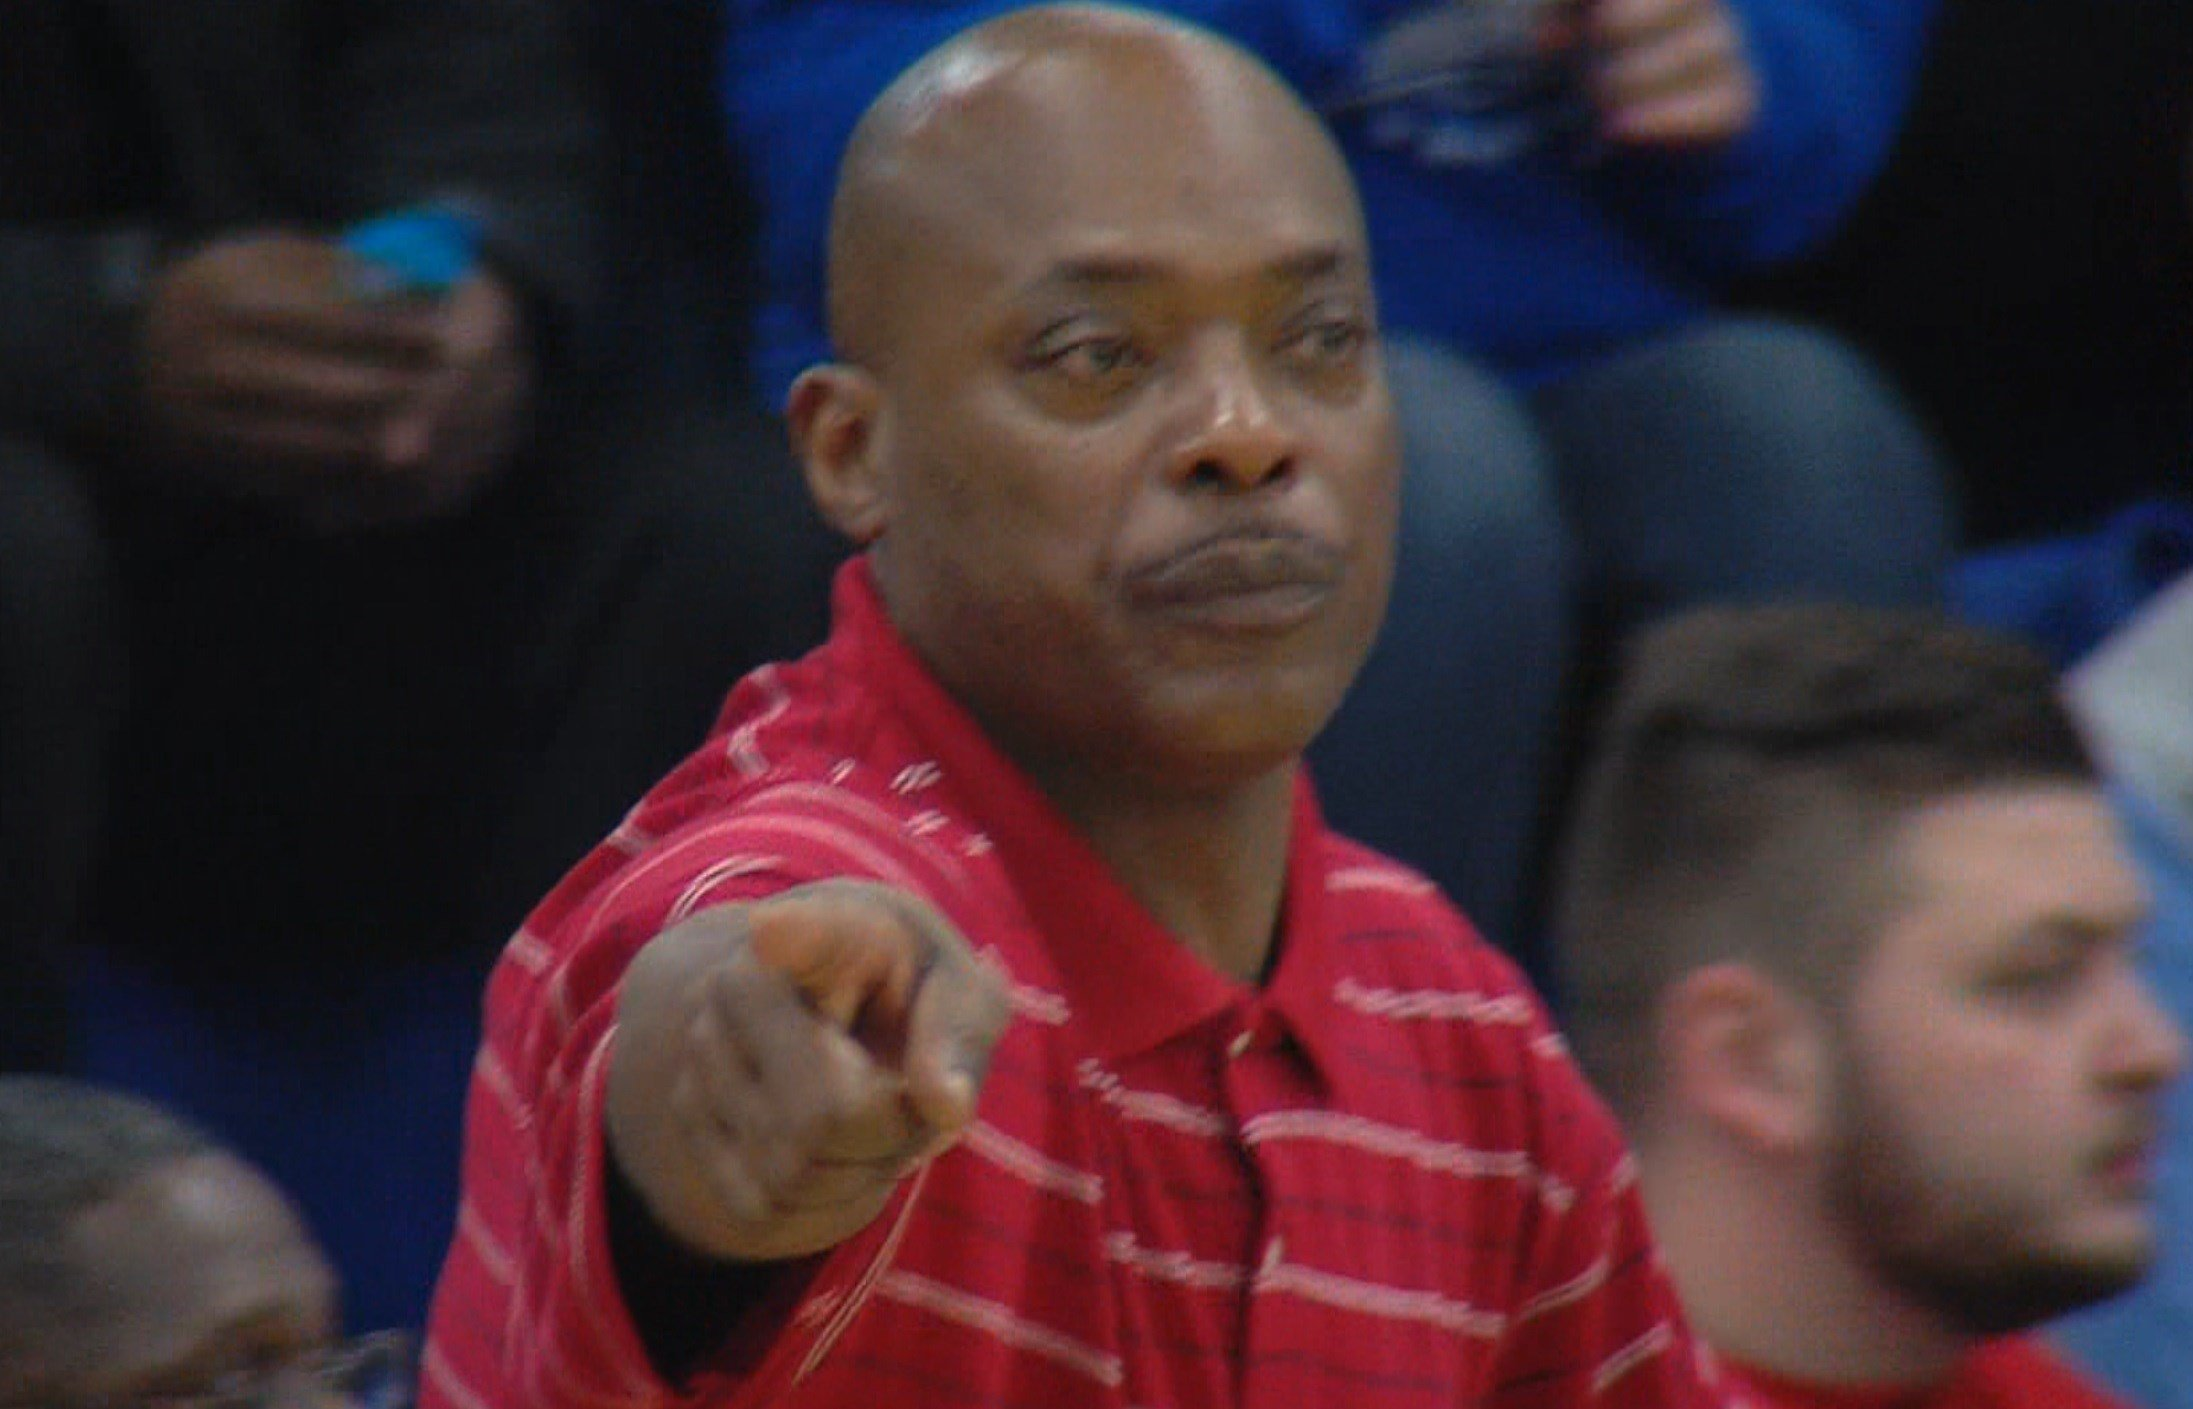 MacArthur head coach Ron Ingram helped the No. 4-seeded Generals to a 70-59 win over No. 5 seed Taylorville on Wednesday in Decatur.